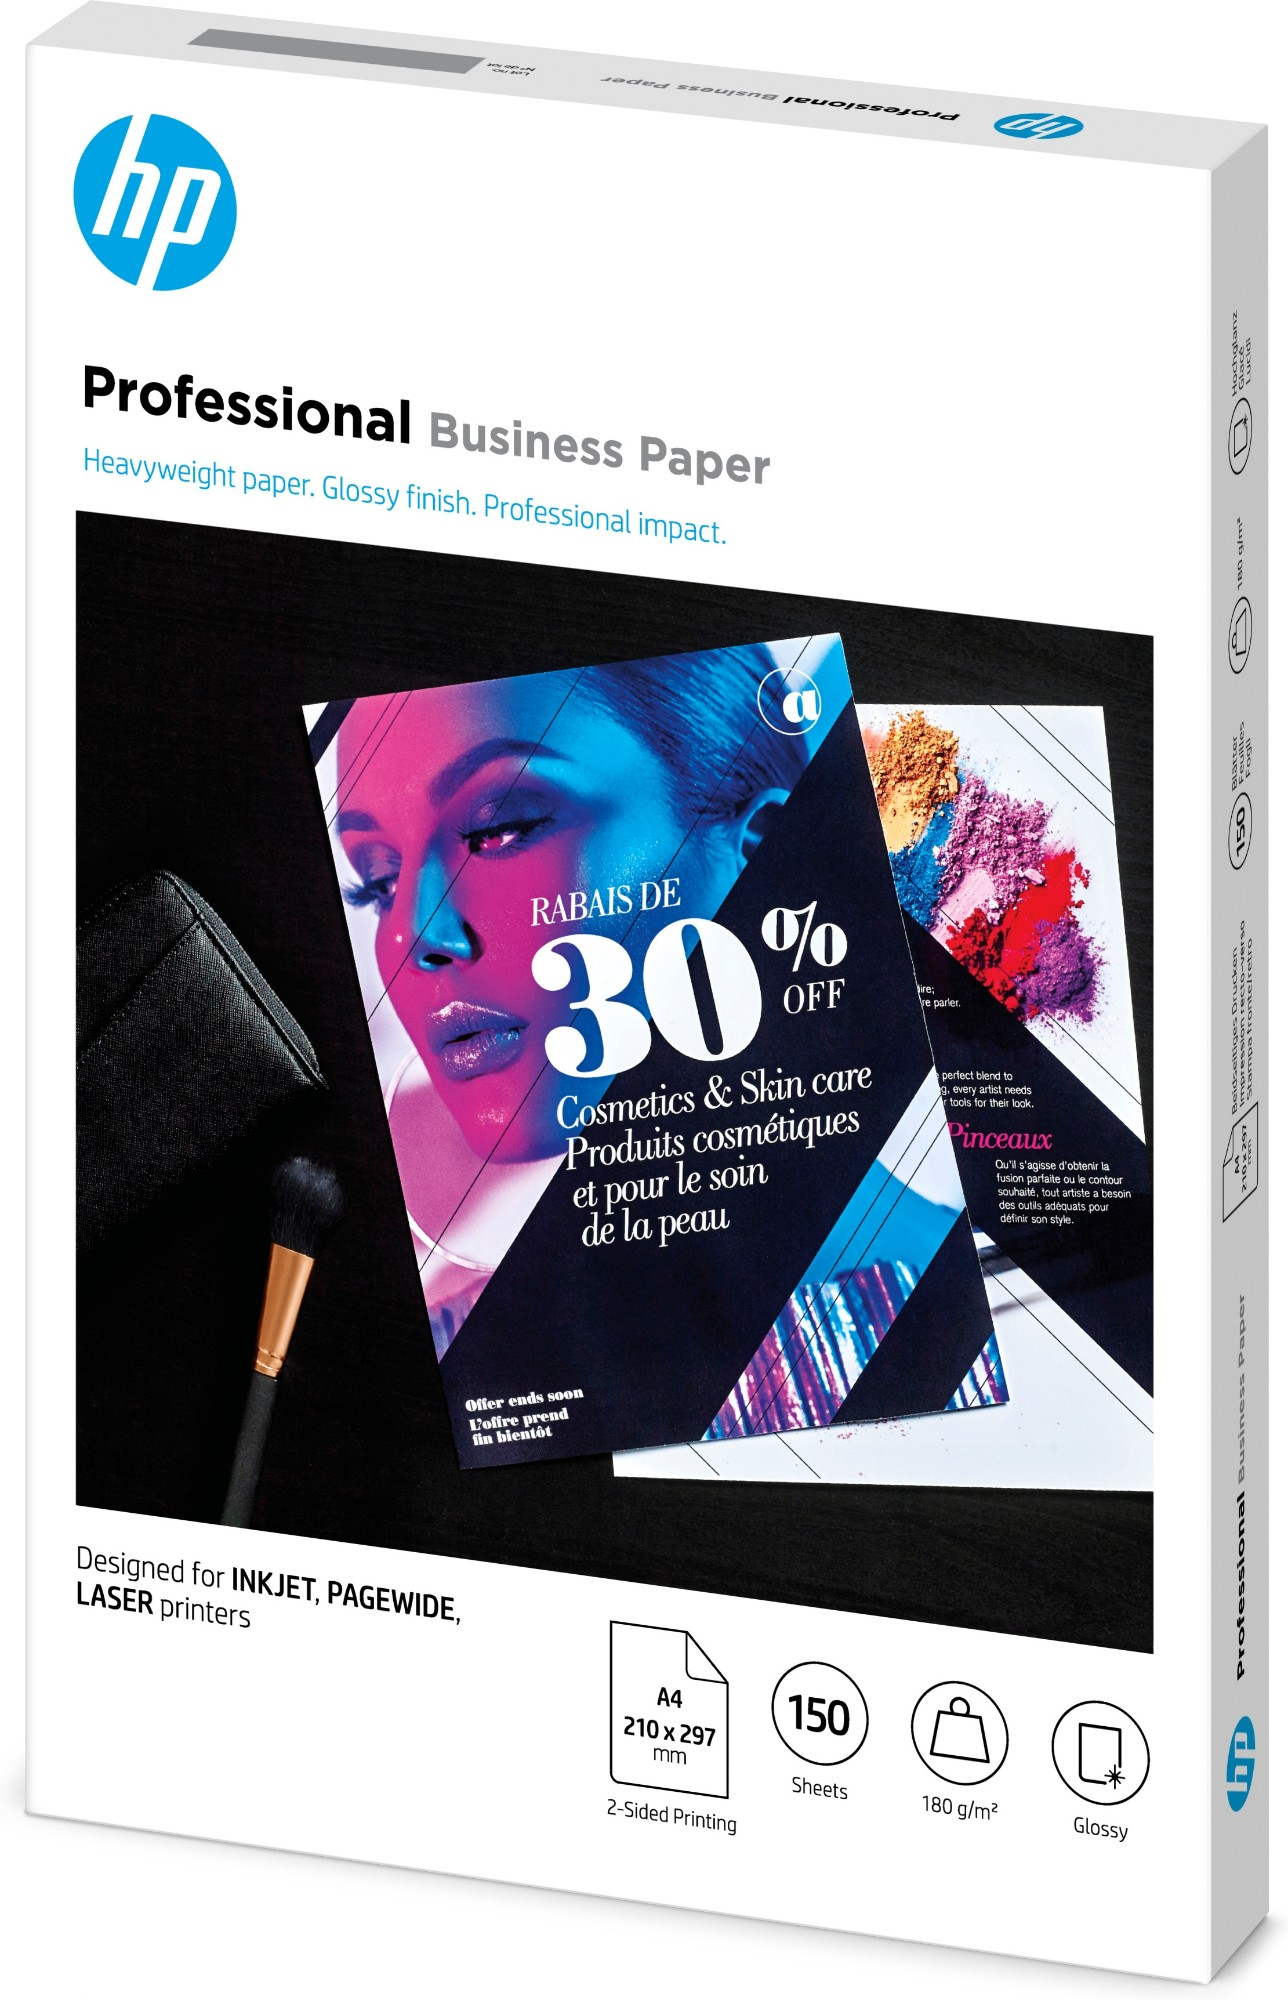 HP 3VK91A printing paper A4 210x297 mm Gloss 150 sheets White